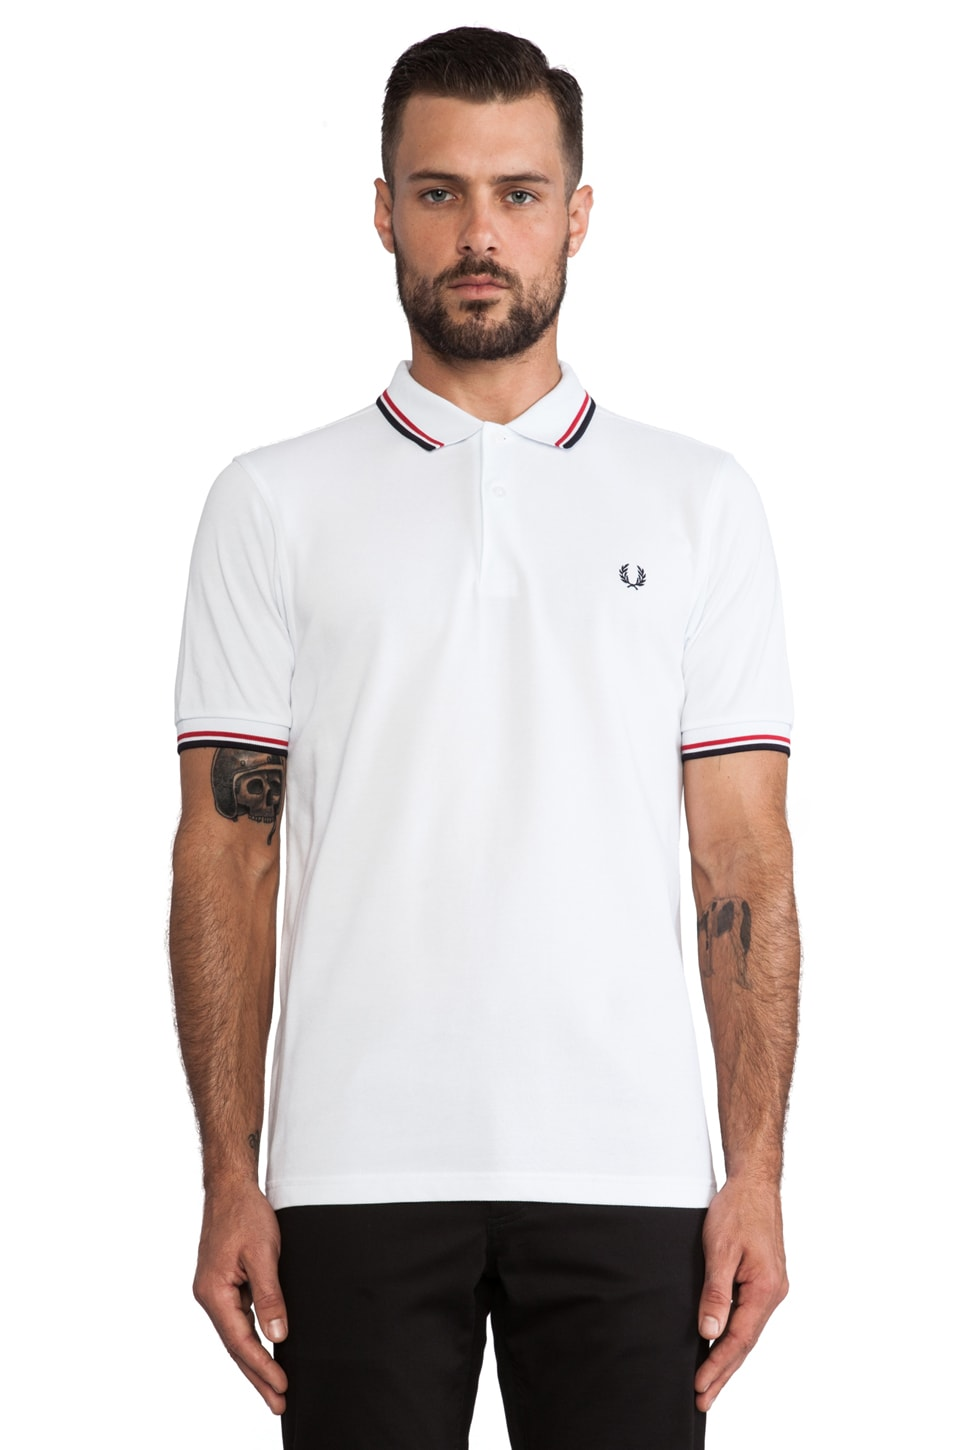 Fred Perry Twin Tipped Fred Perry Shirt in White & Bright Red & Navy